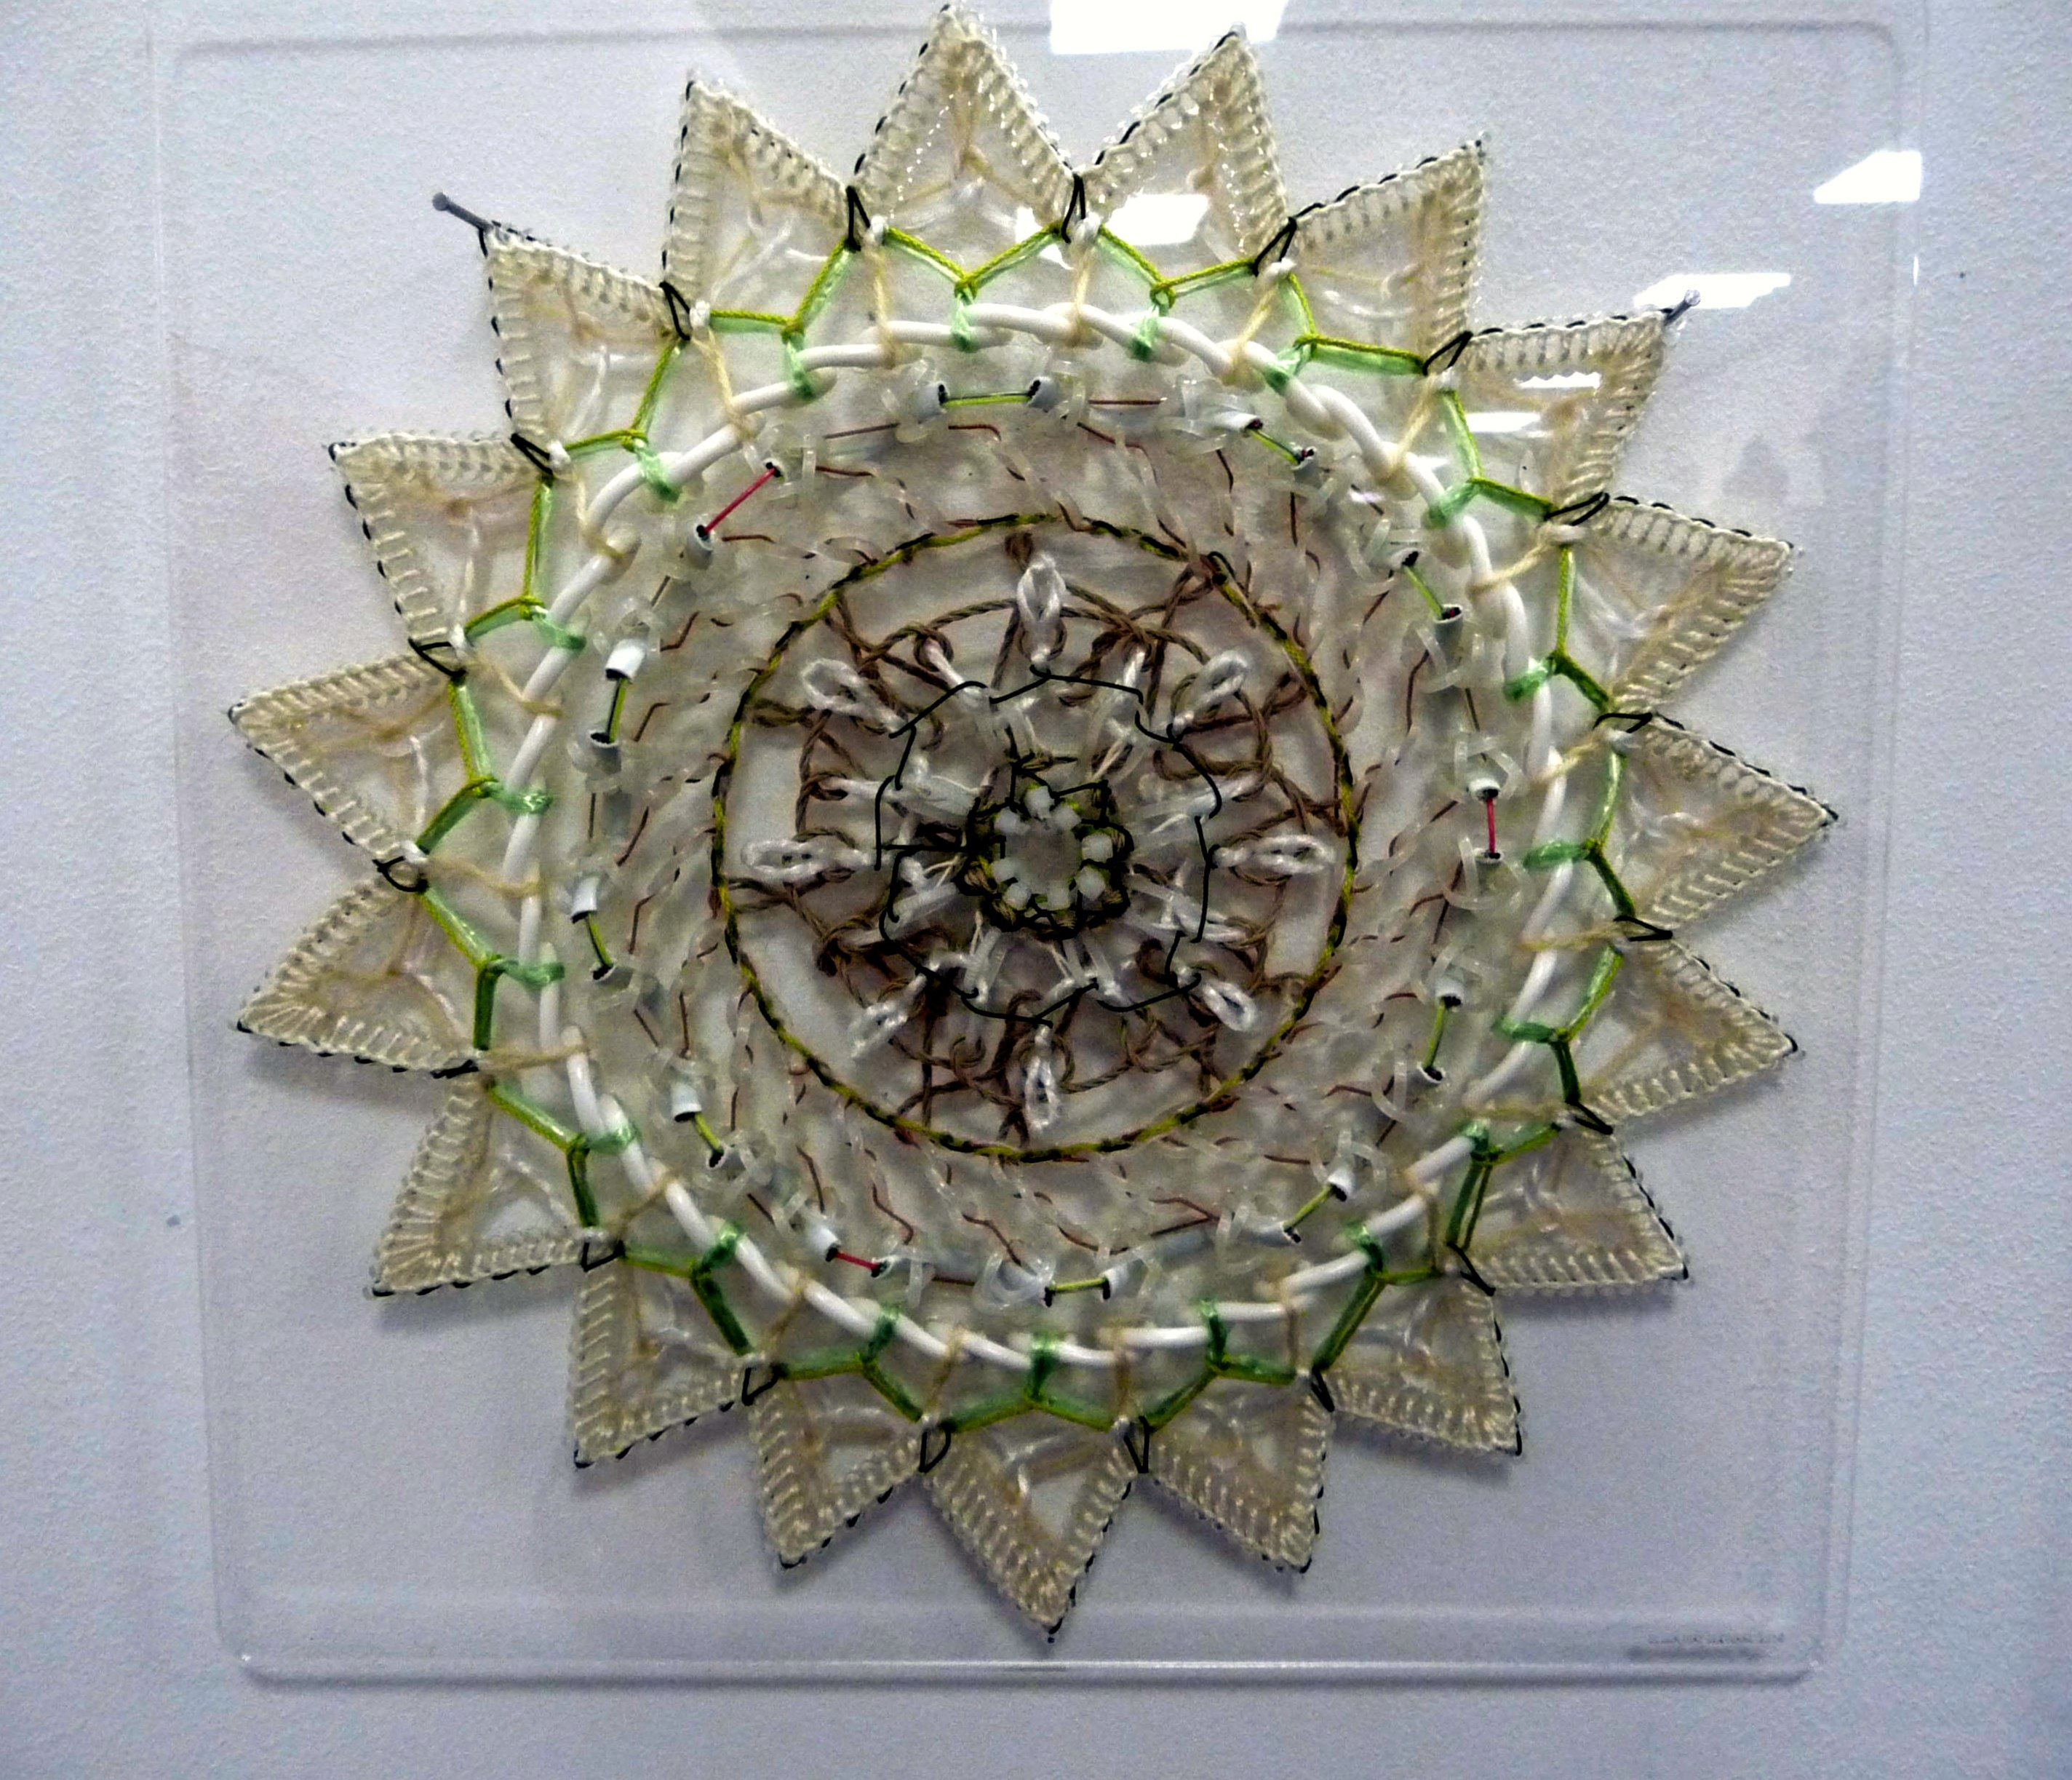 OFF THE TOP OF THEIR HEADS by Bella May Leonard, artist in residence at Gawthorpe Hall 2013. Stitch on pierced perspex.